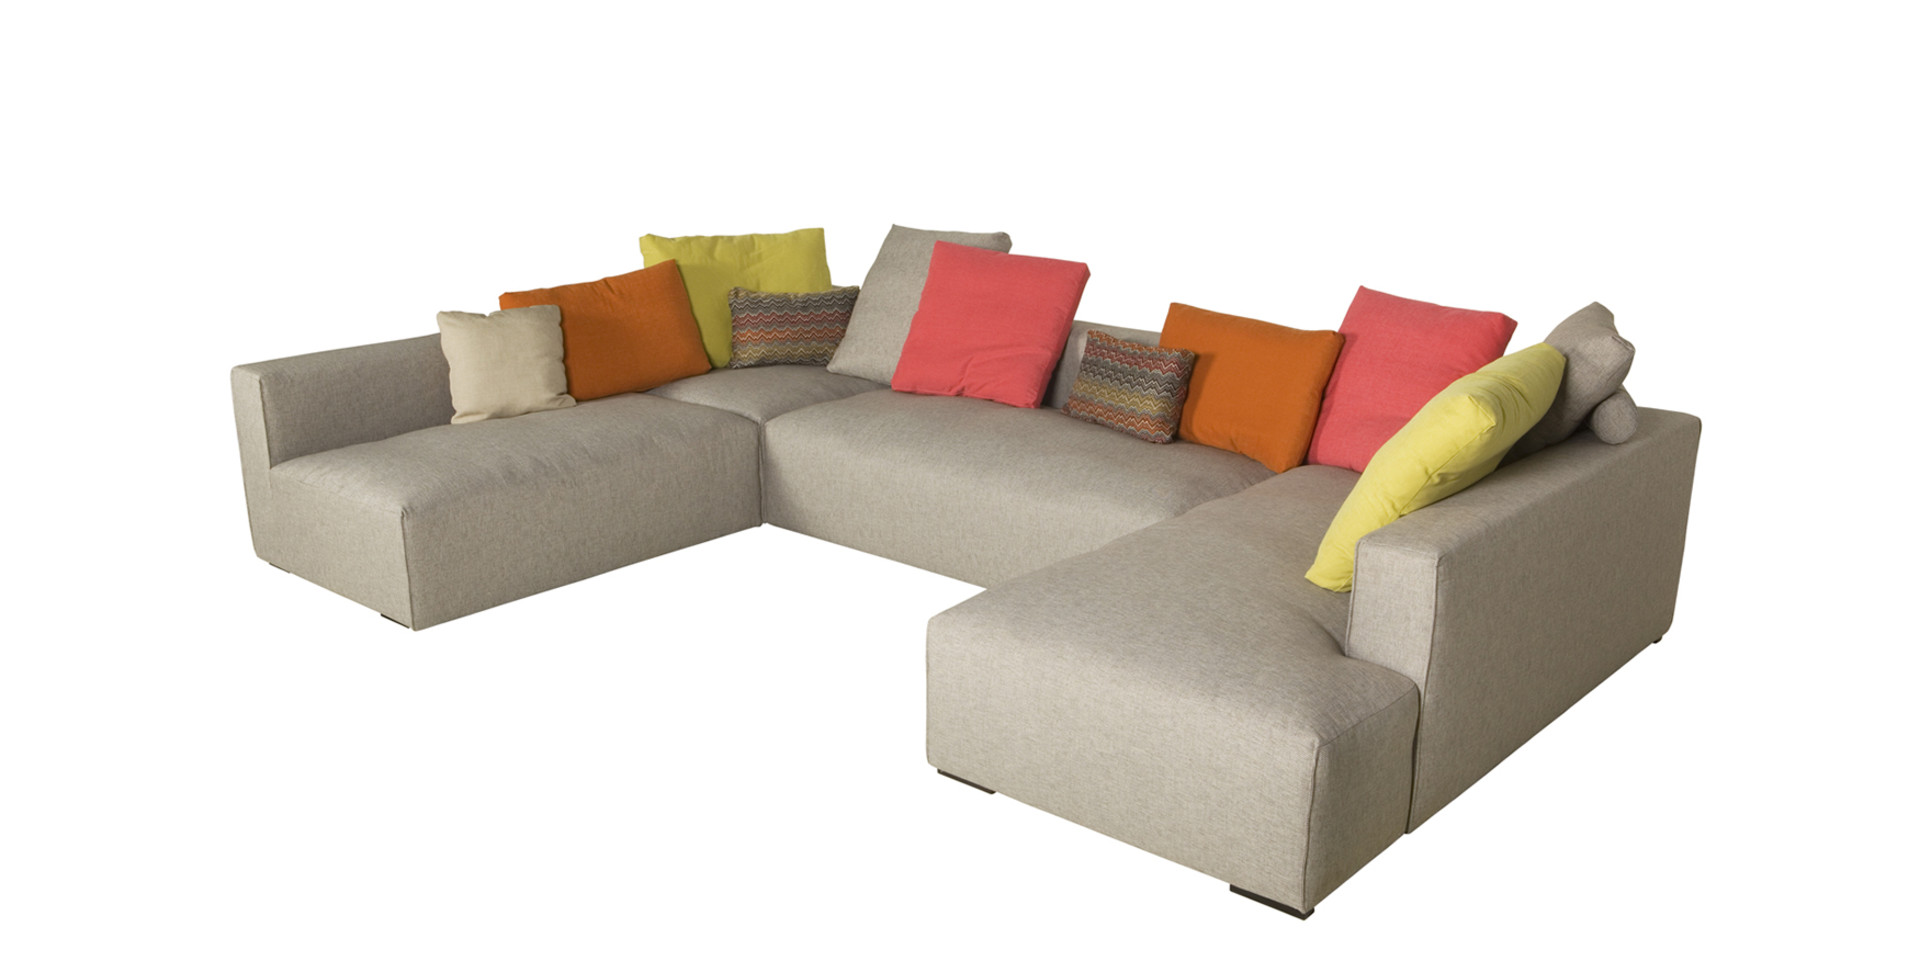 sits-liam-angle-25seater_element80left_element126_divanright_nancy4grey-beige_4